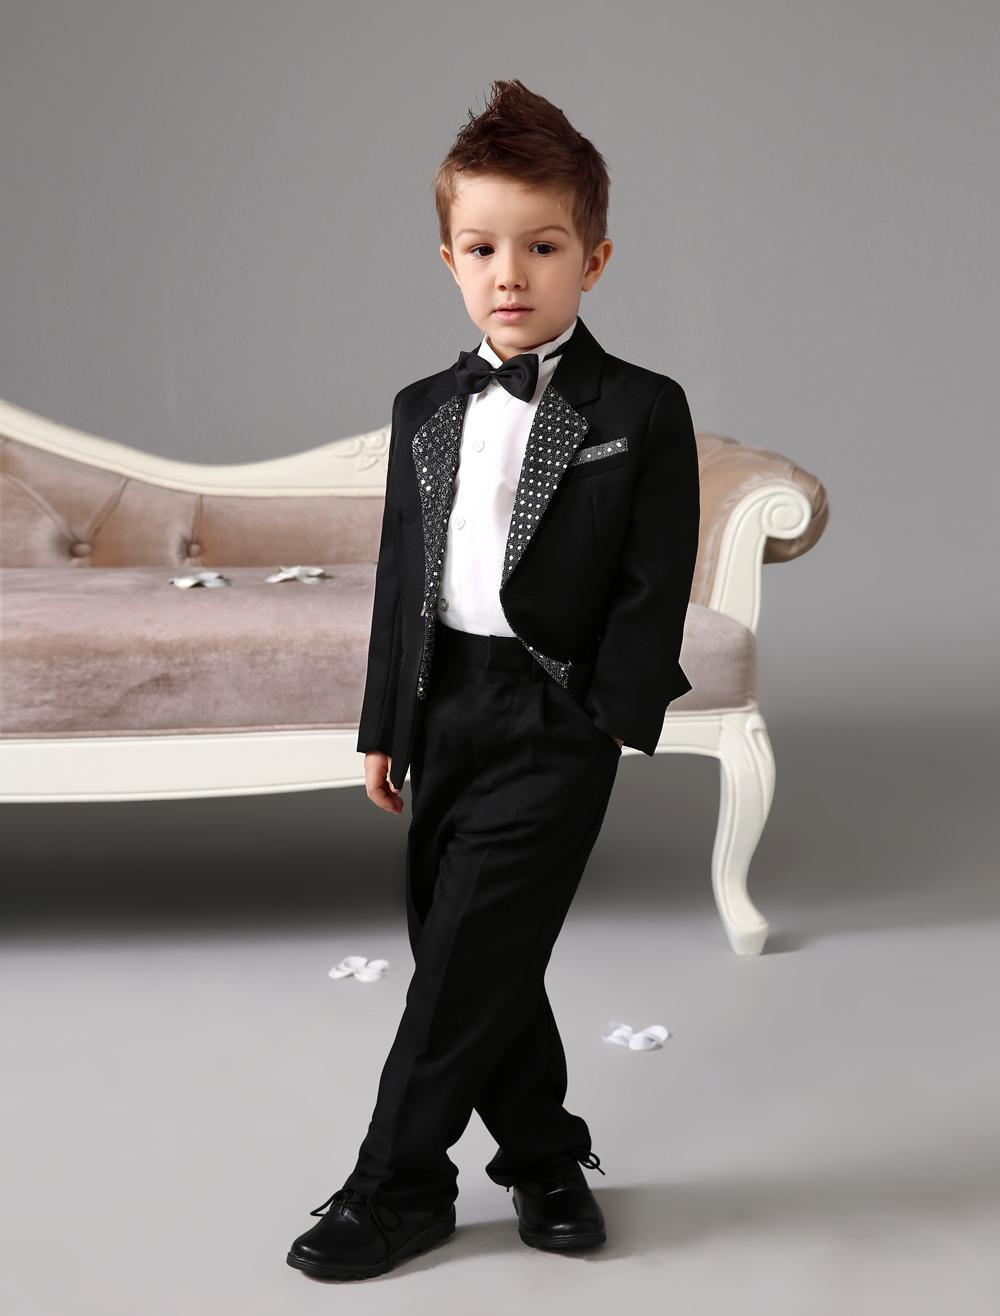 Boys Dress Suits. A special occasion calling for a dressed-up attire? Swap out your hoodies and jeans for boys' dress urgut.ga tiny tots and toddlers to little boys and beyond, check out spiffy suits to create sharp looks for your little guy.